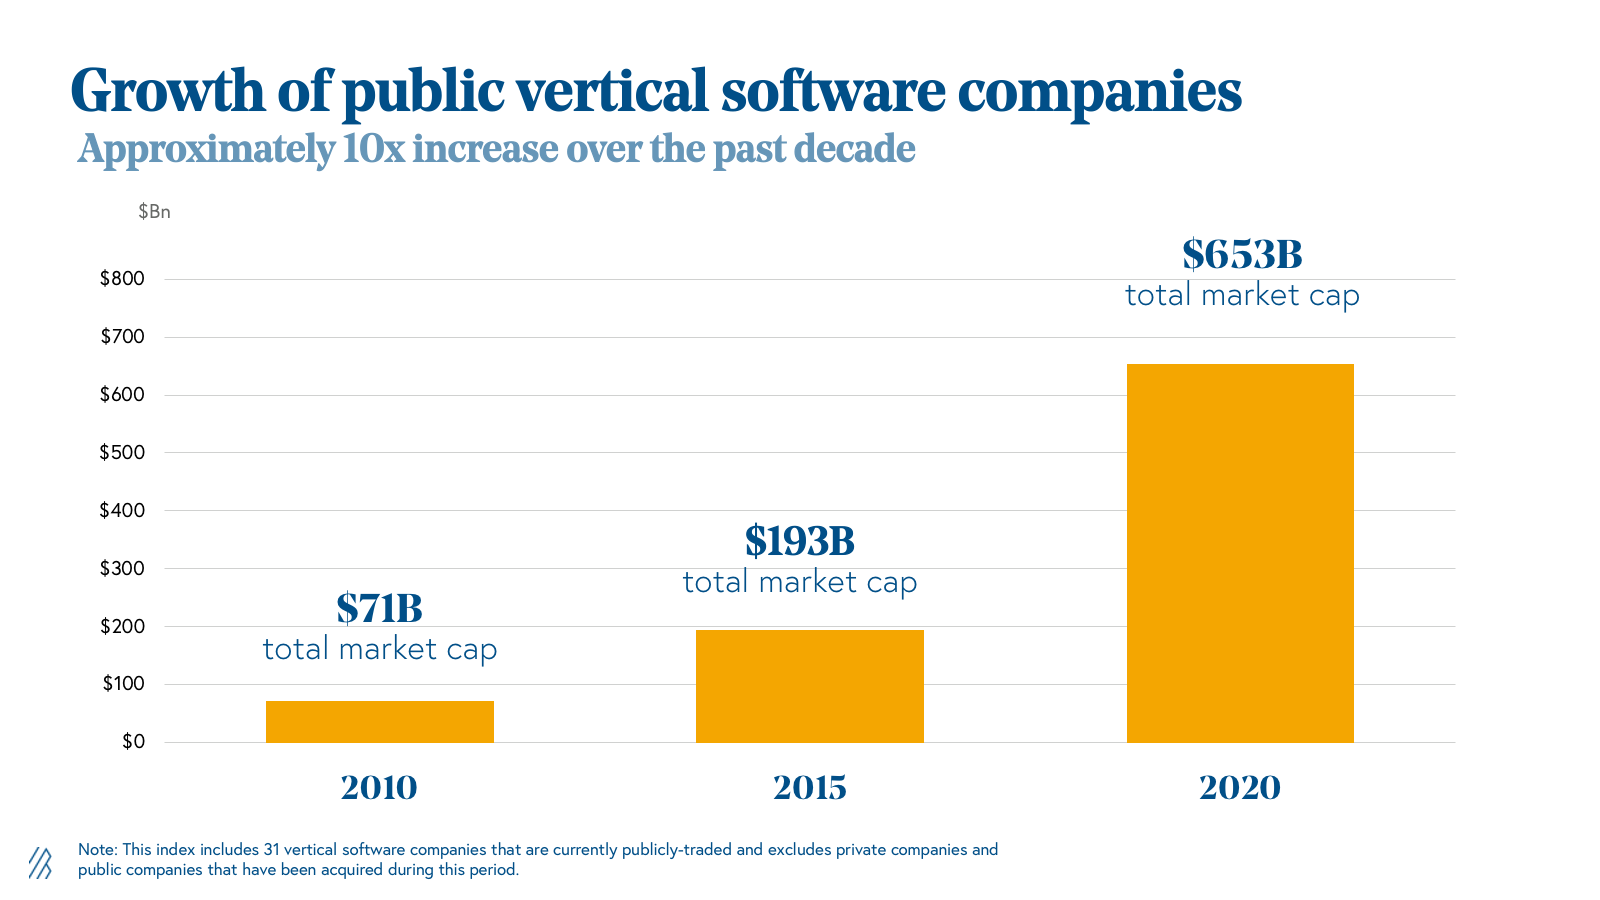 Growth of public vertical software companies graph